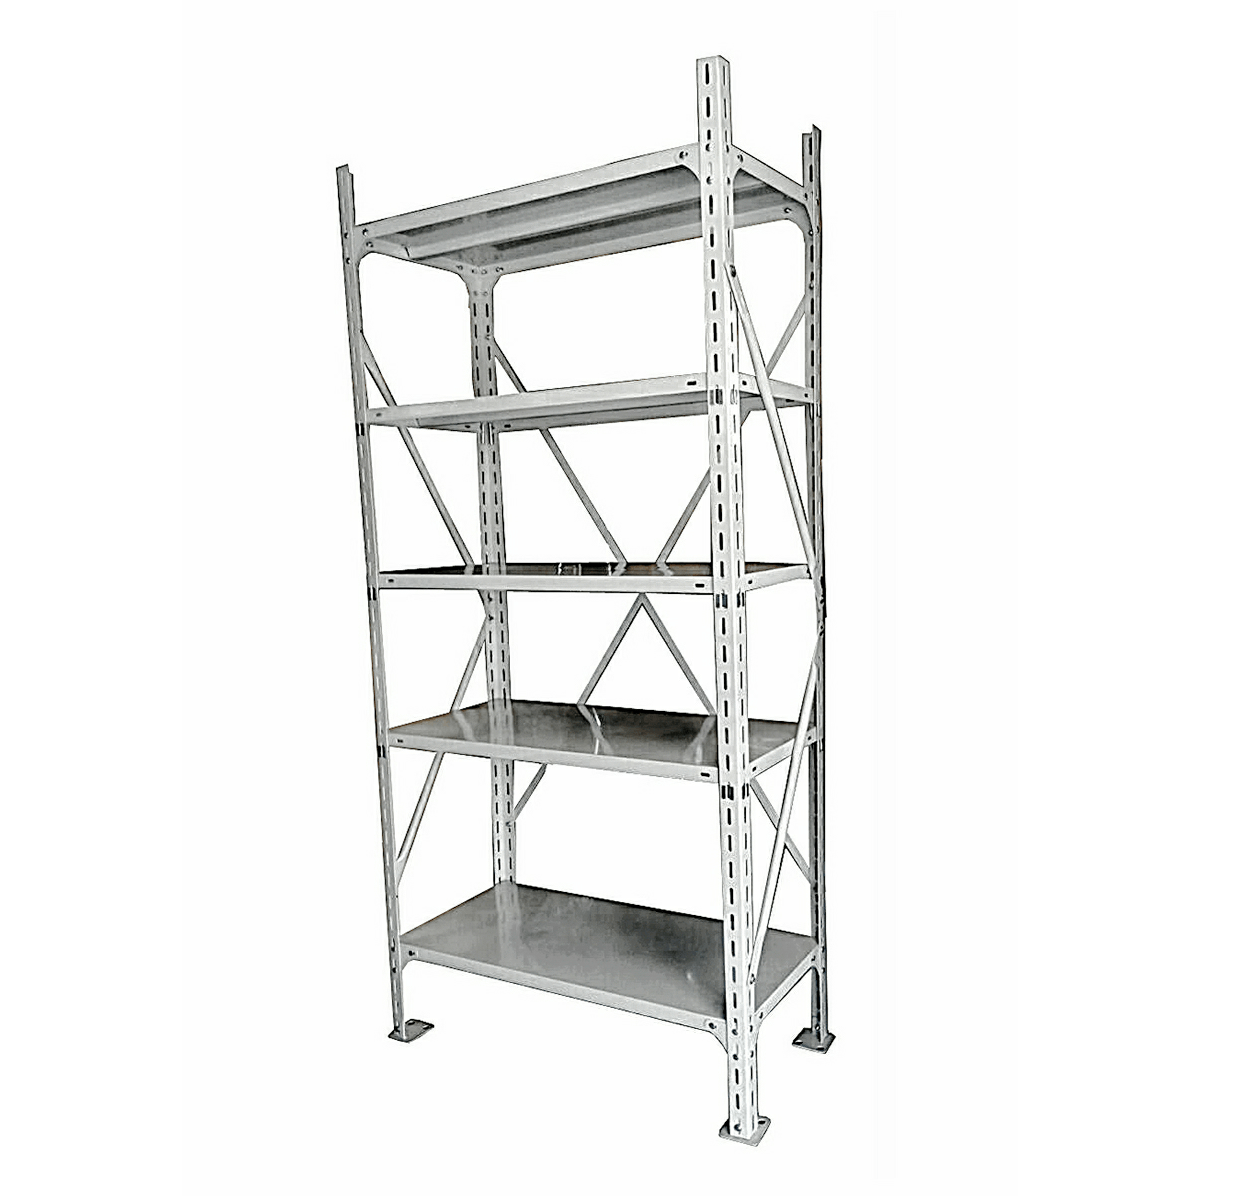 Metal Shelving Boltless Steel Shelving Rack With 5 Adjustable Shelves